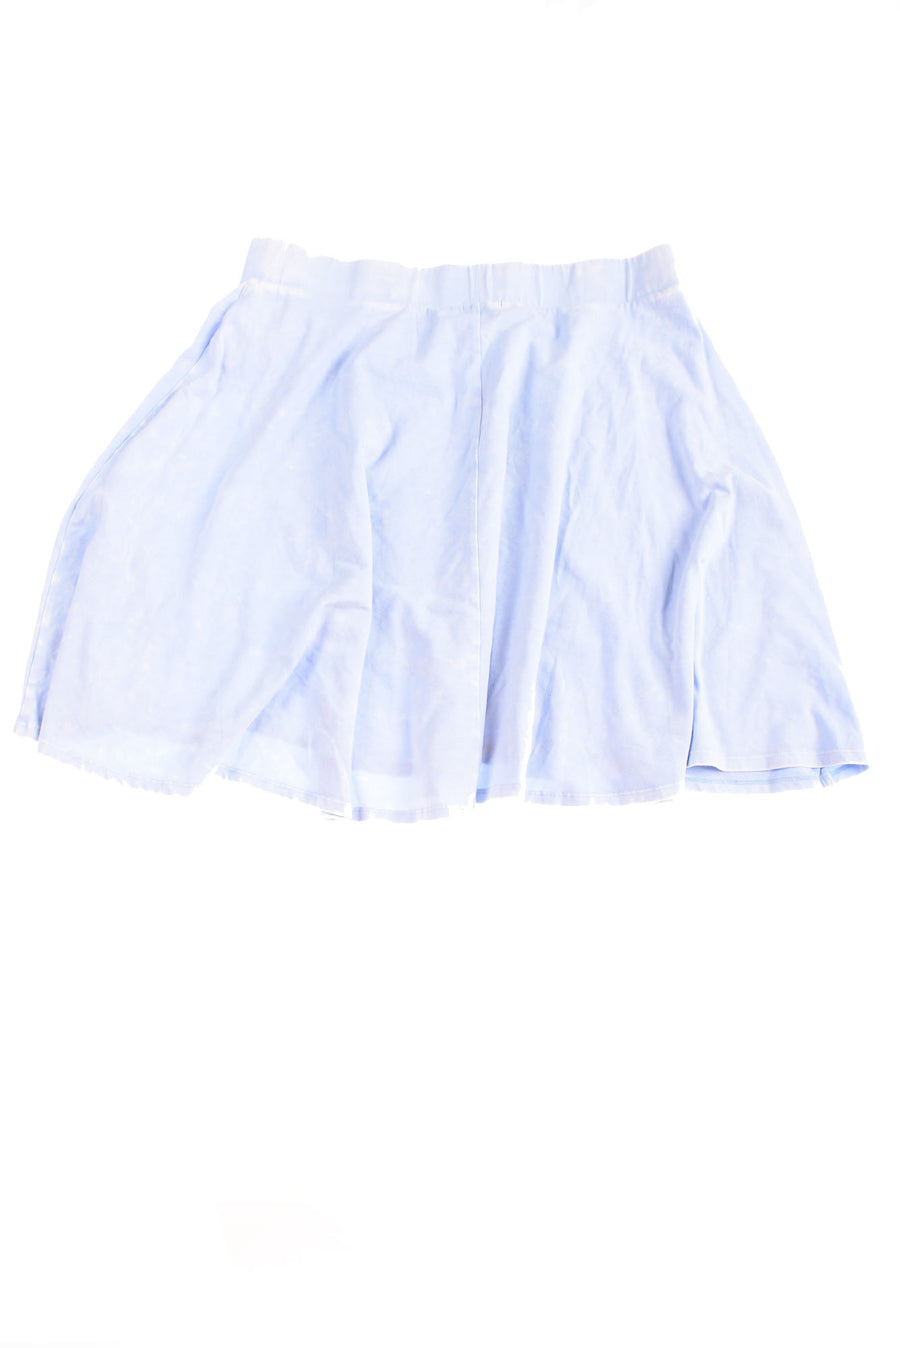 USED Torrid Women's Skirt 0 Powder Blue